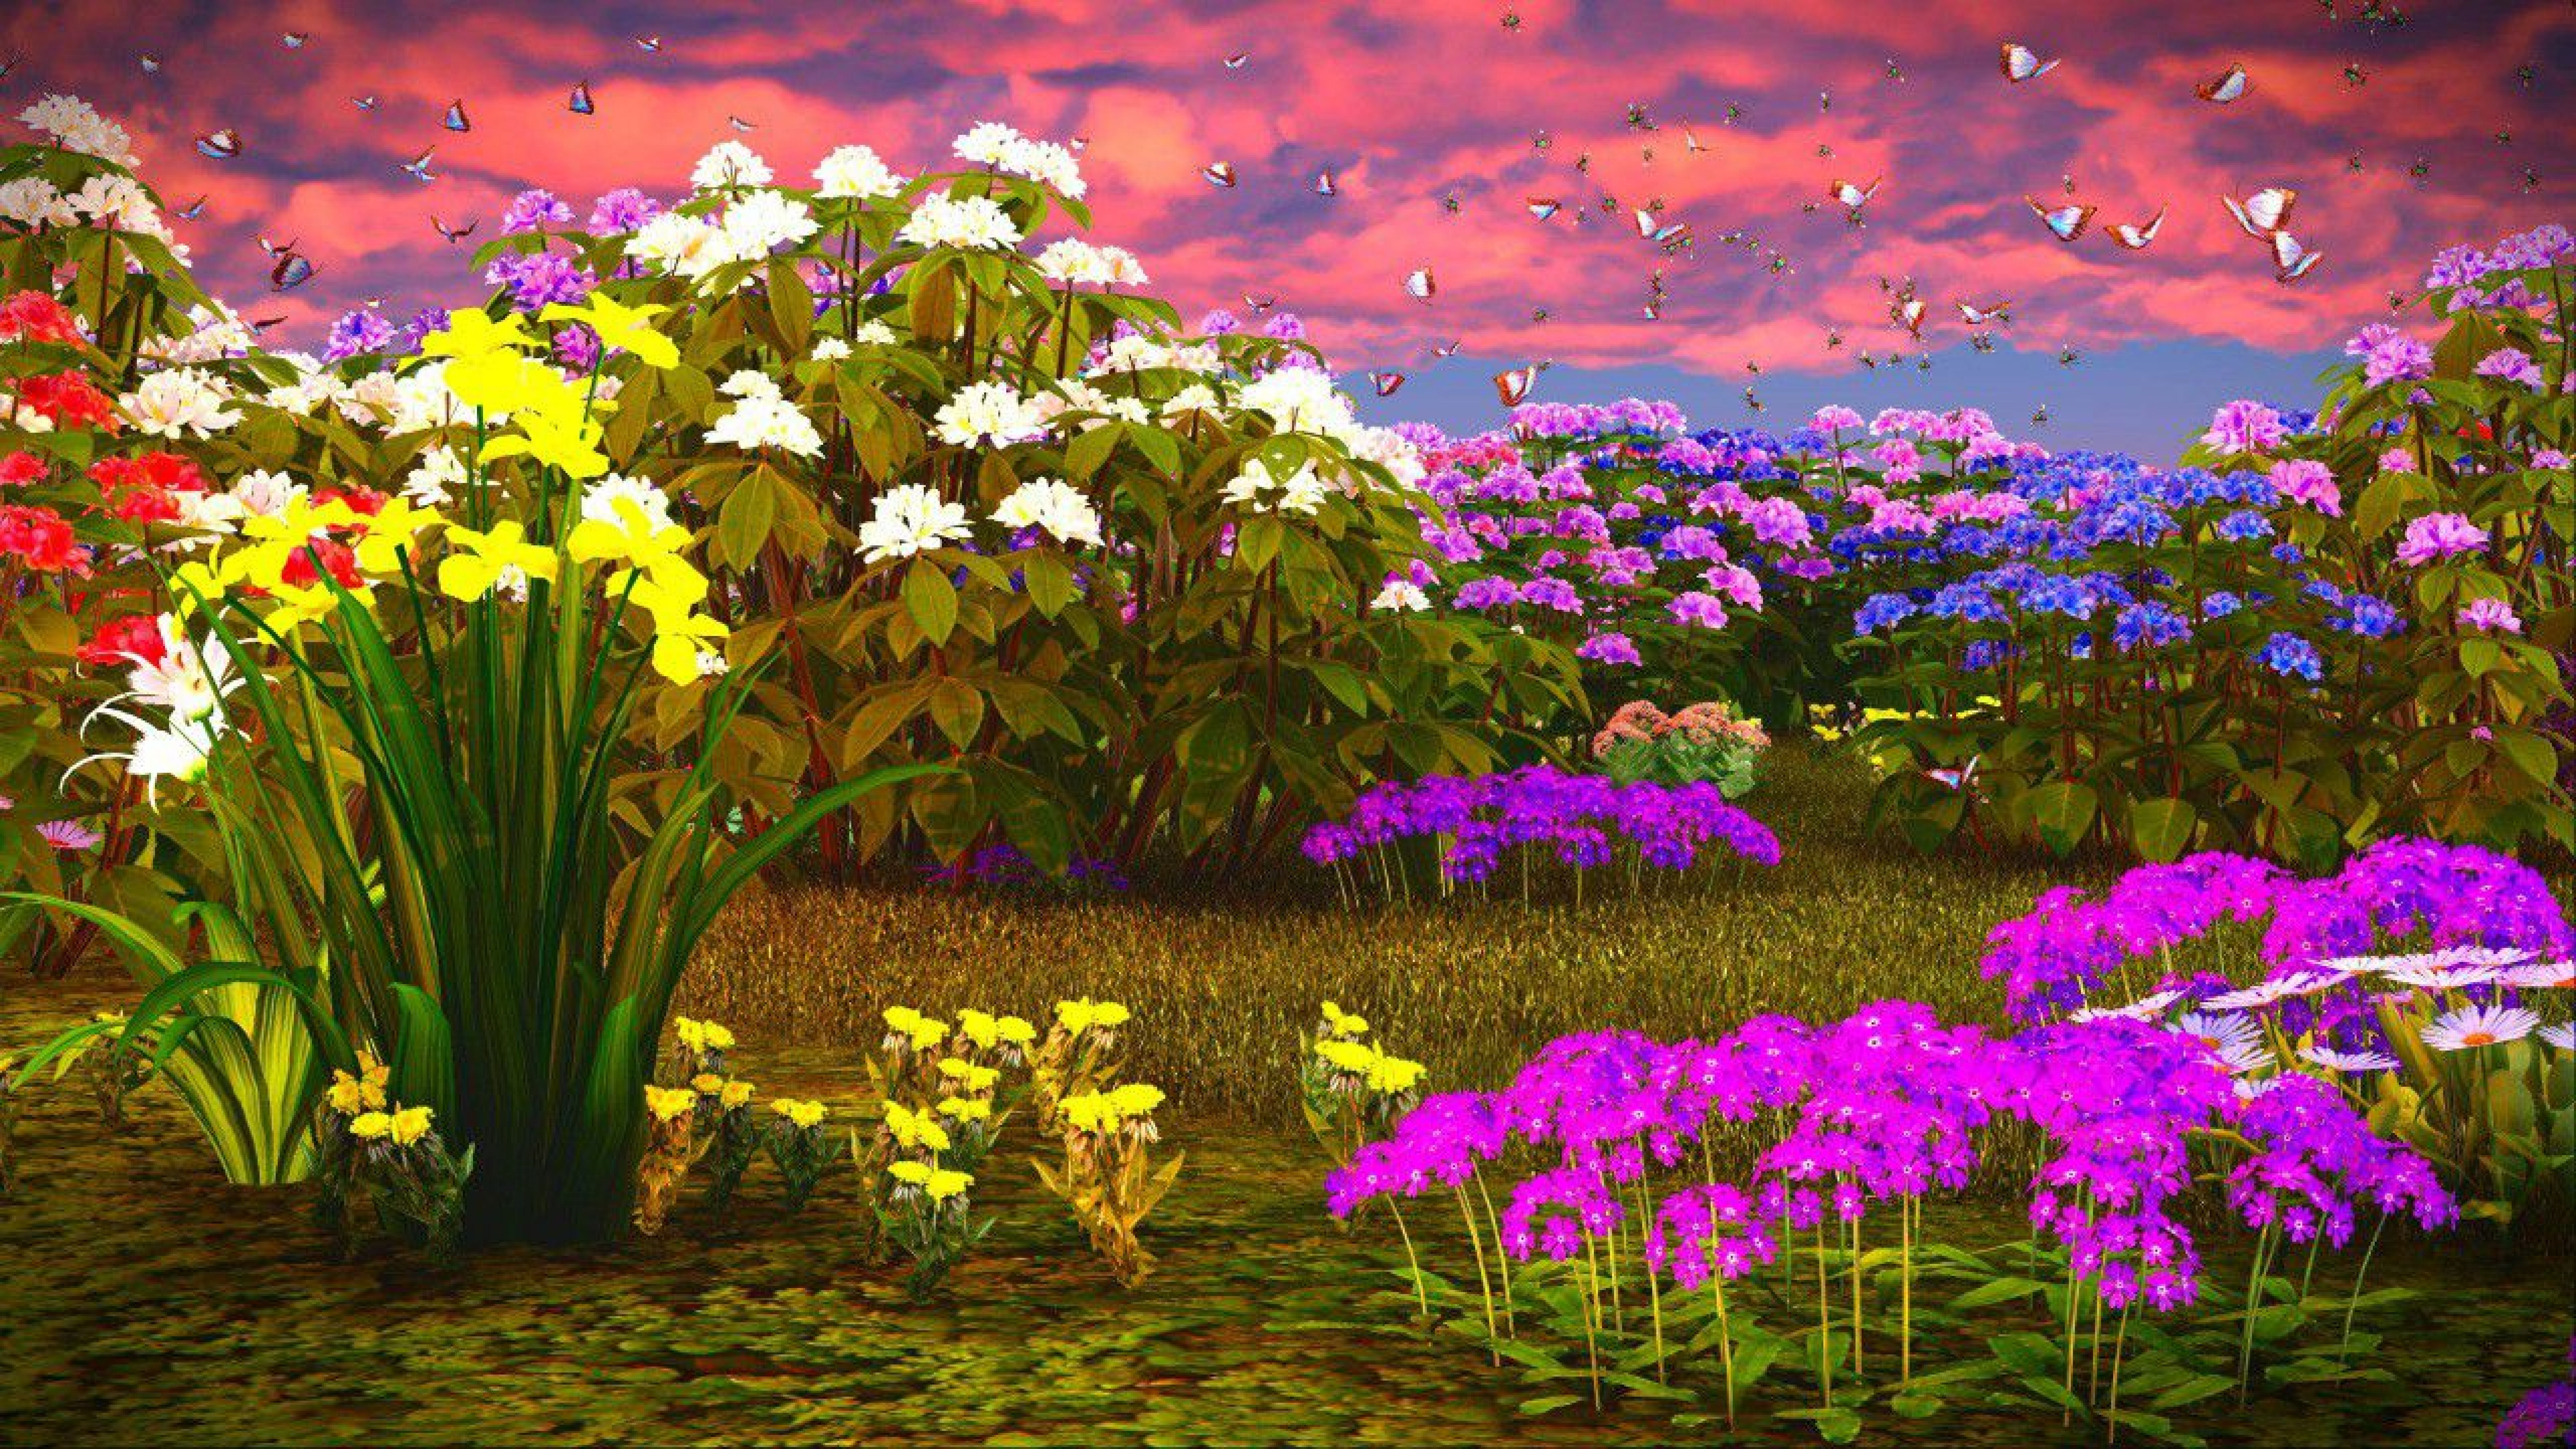 8k ultra high res wallpapers top free 8k ultra high res - Flower wallpaper 3d pic ...